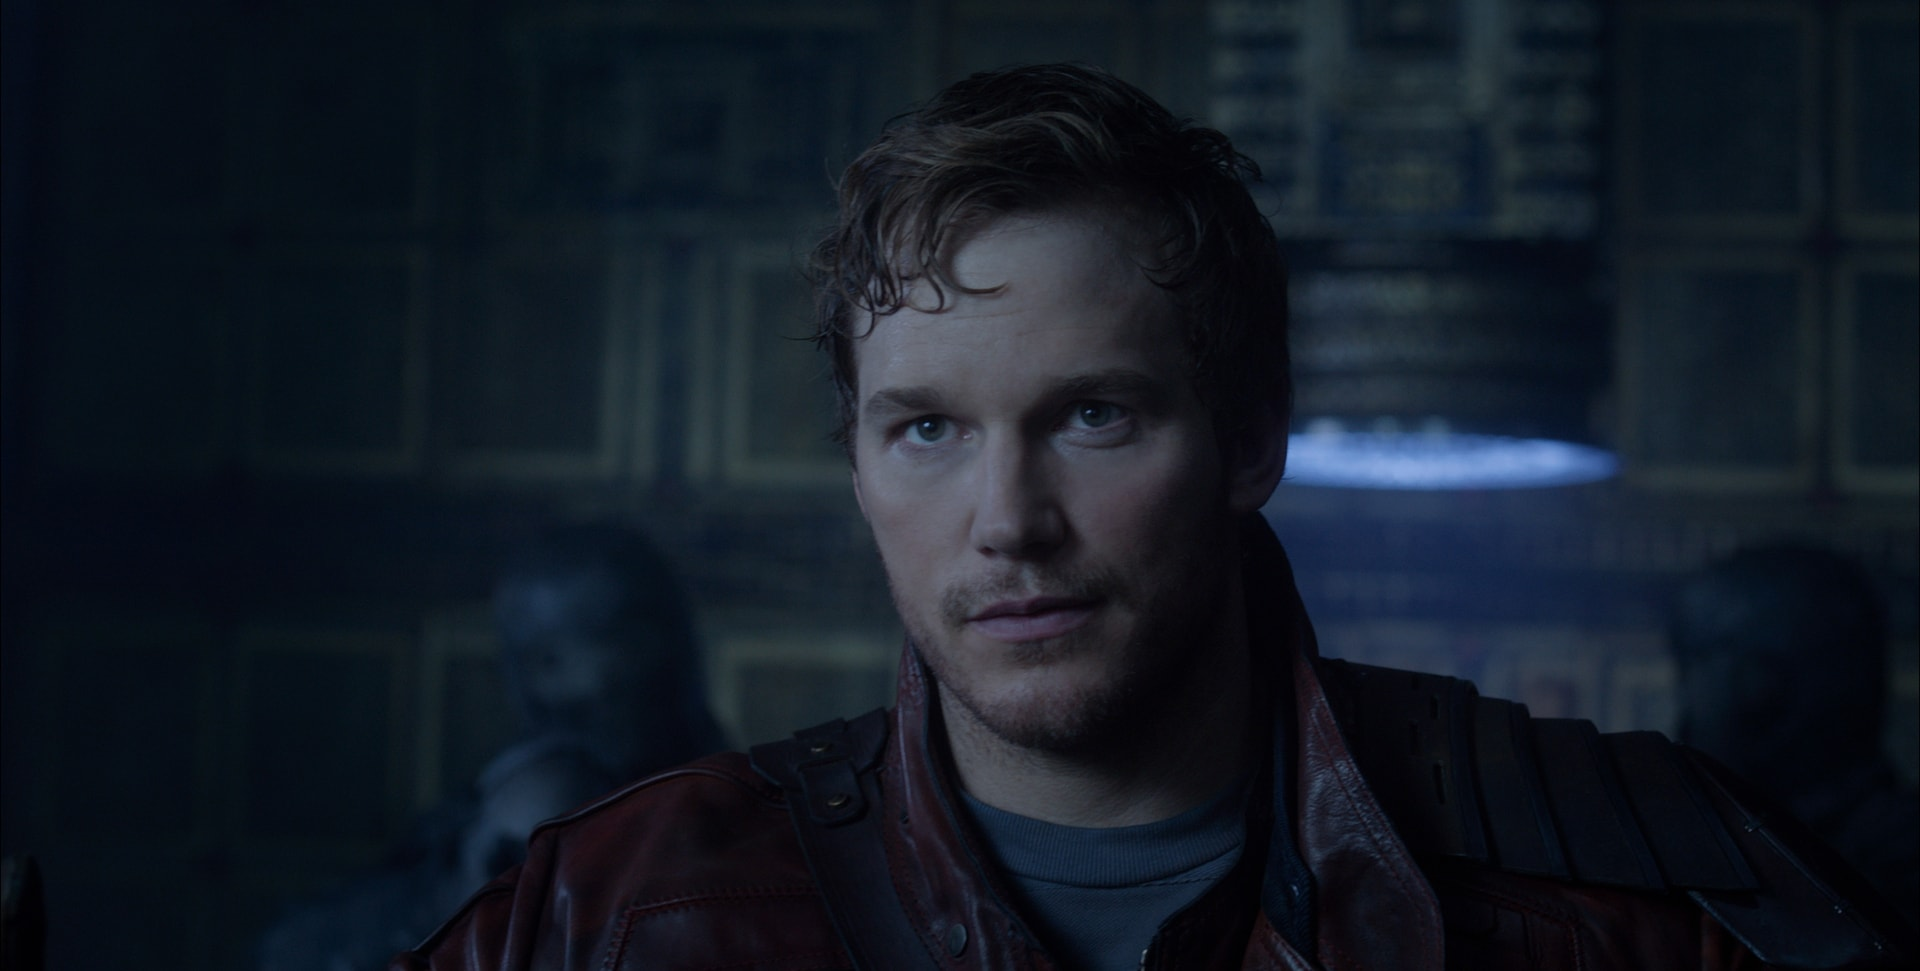 Chris Pratt as Starlord in Guardians of the Galaxy